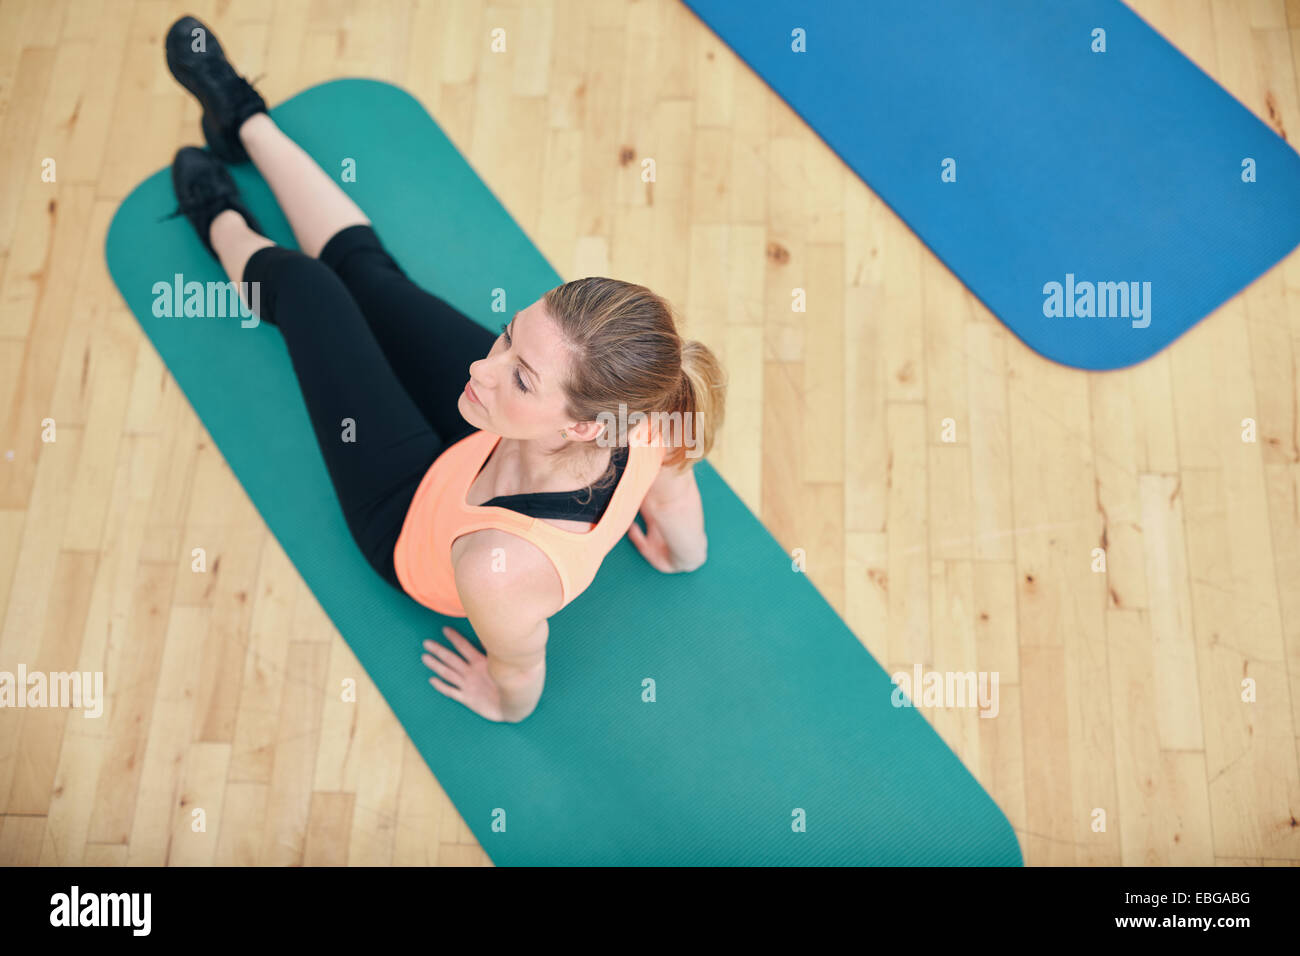 Top view of fitness woman exercising on a fitness mat . Fit woman working out at gym. - Stock Image